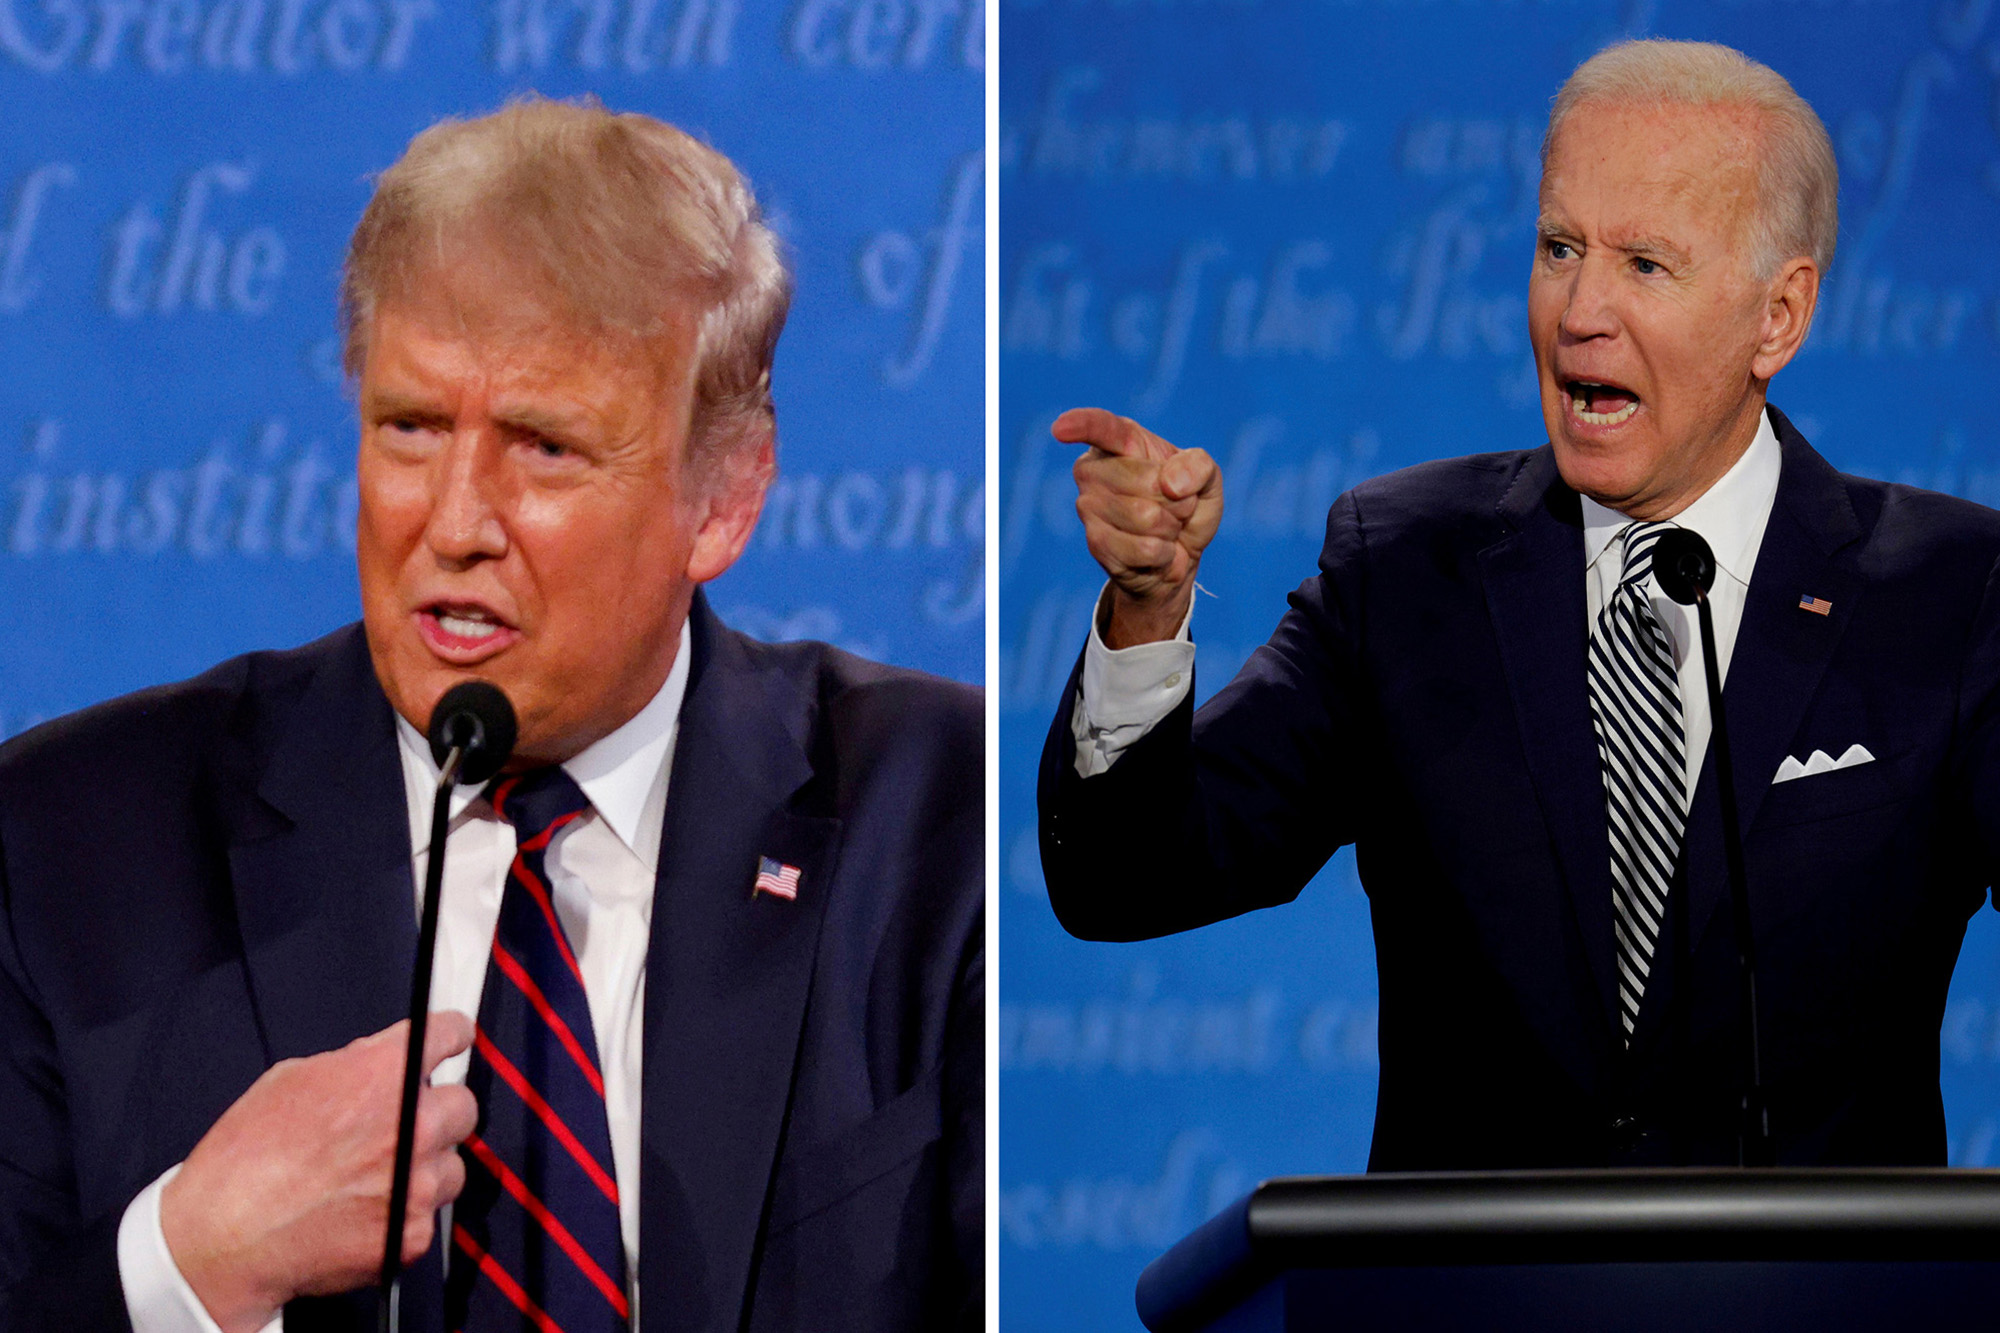 Trump tweets Biden 'won because the election was rigged'